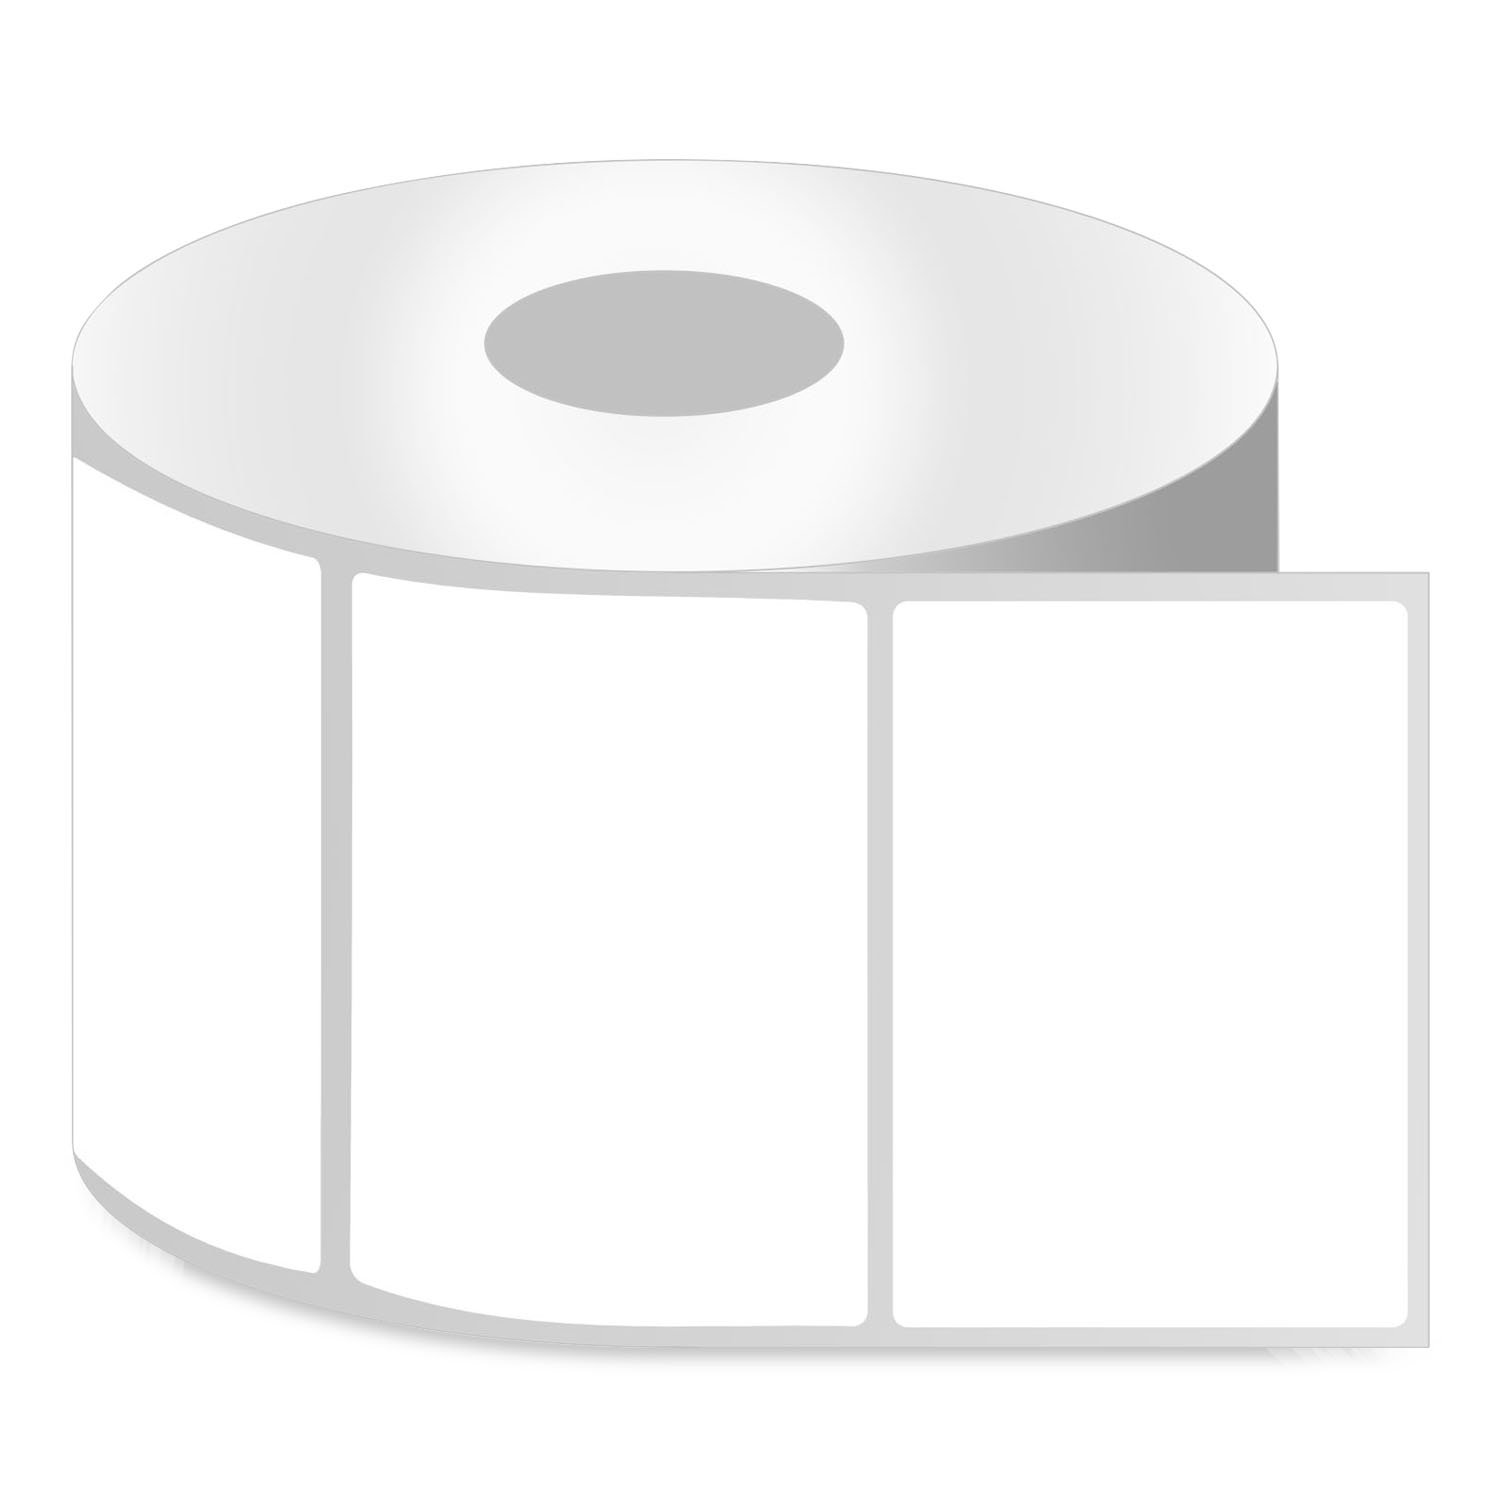 Zebra Compatible Direct Thermal Removable Labels Barcodes 1.5 x 1 in, 10 Rolls